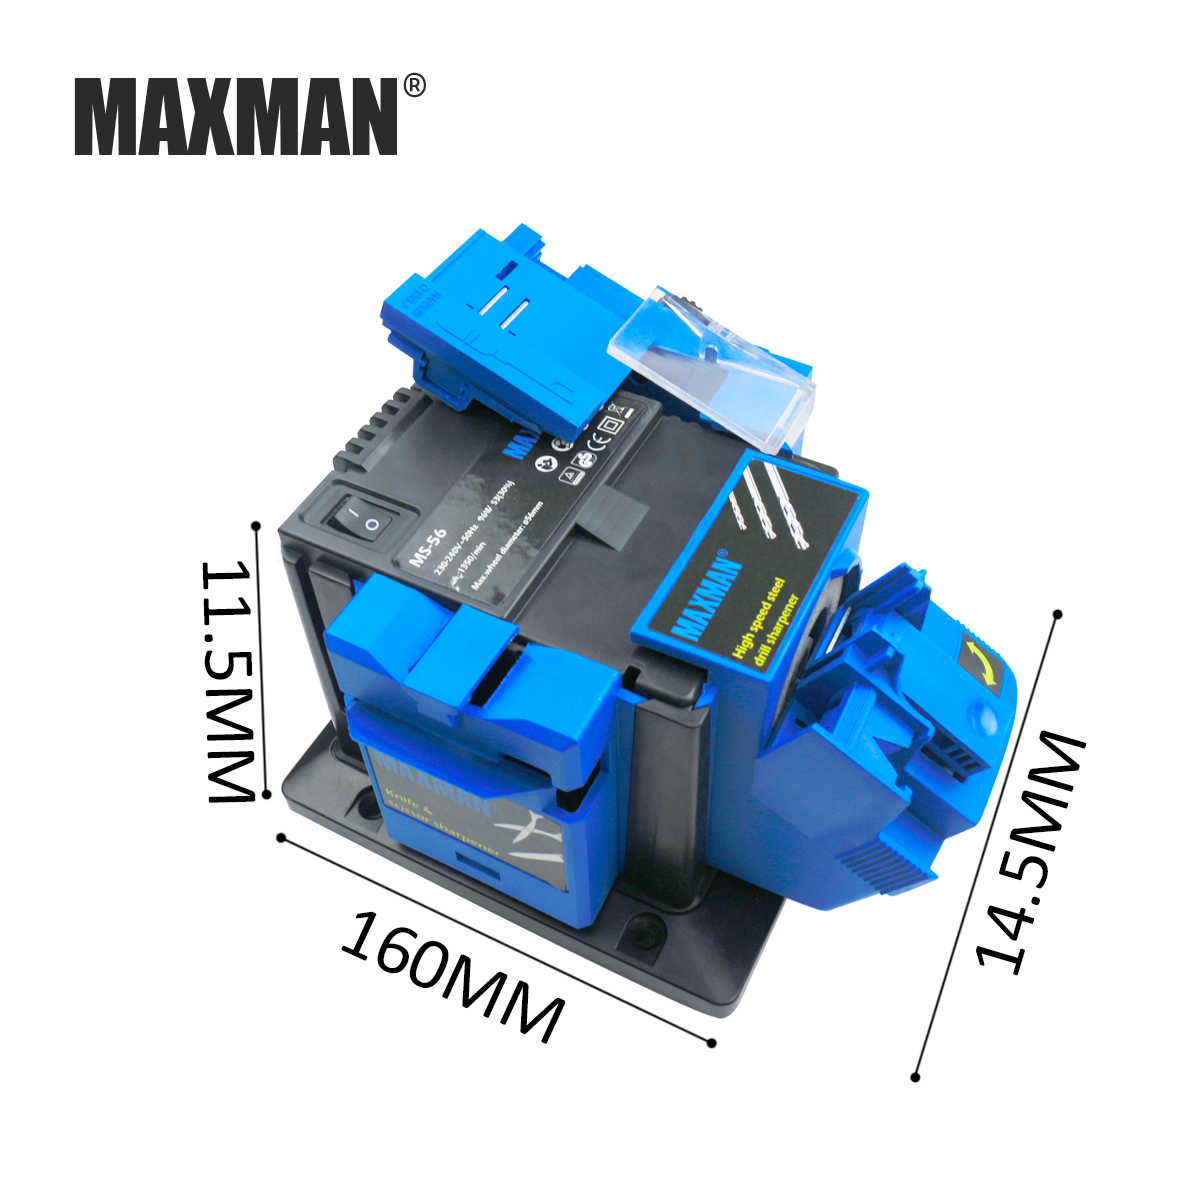 MAXMAN Professional Electric Knife Scissors Sharpener Chisel Plane Drill Sharpening Machine for Kitchen Knives Tool portable electric knife tool drill sharpener sharpening drill adjustable multitool knife sharpener sharpening tool power tool